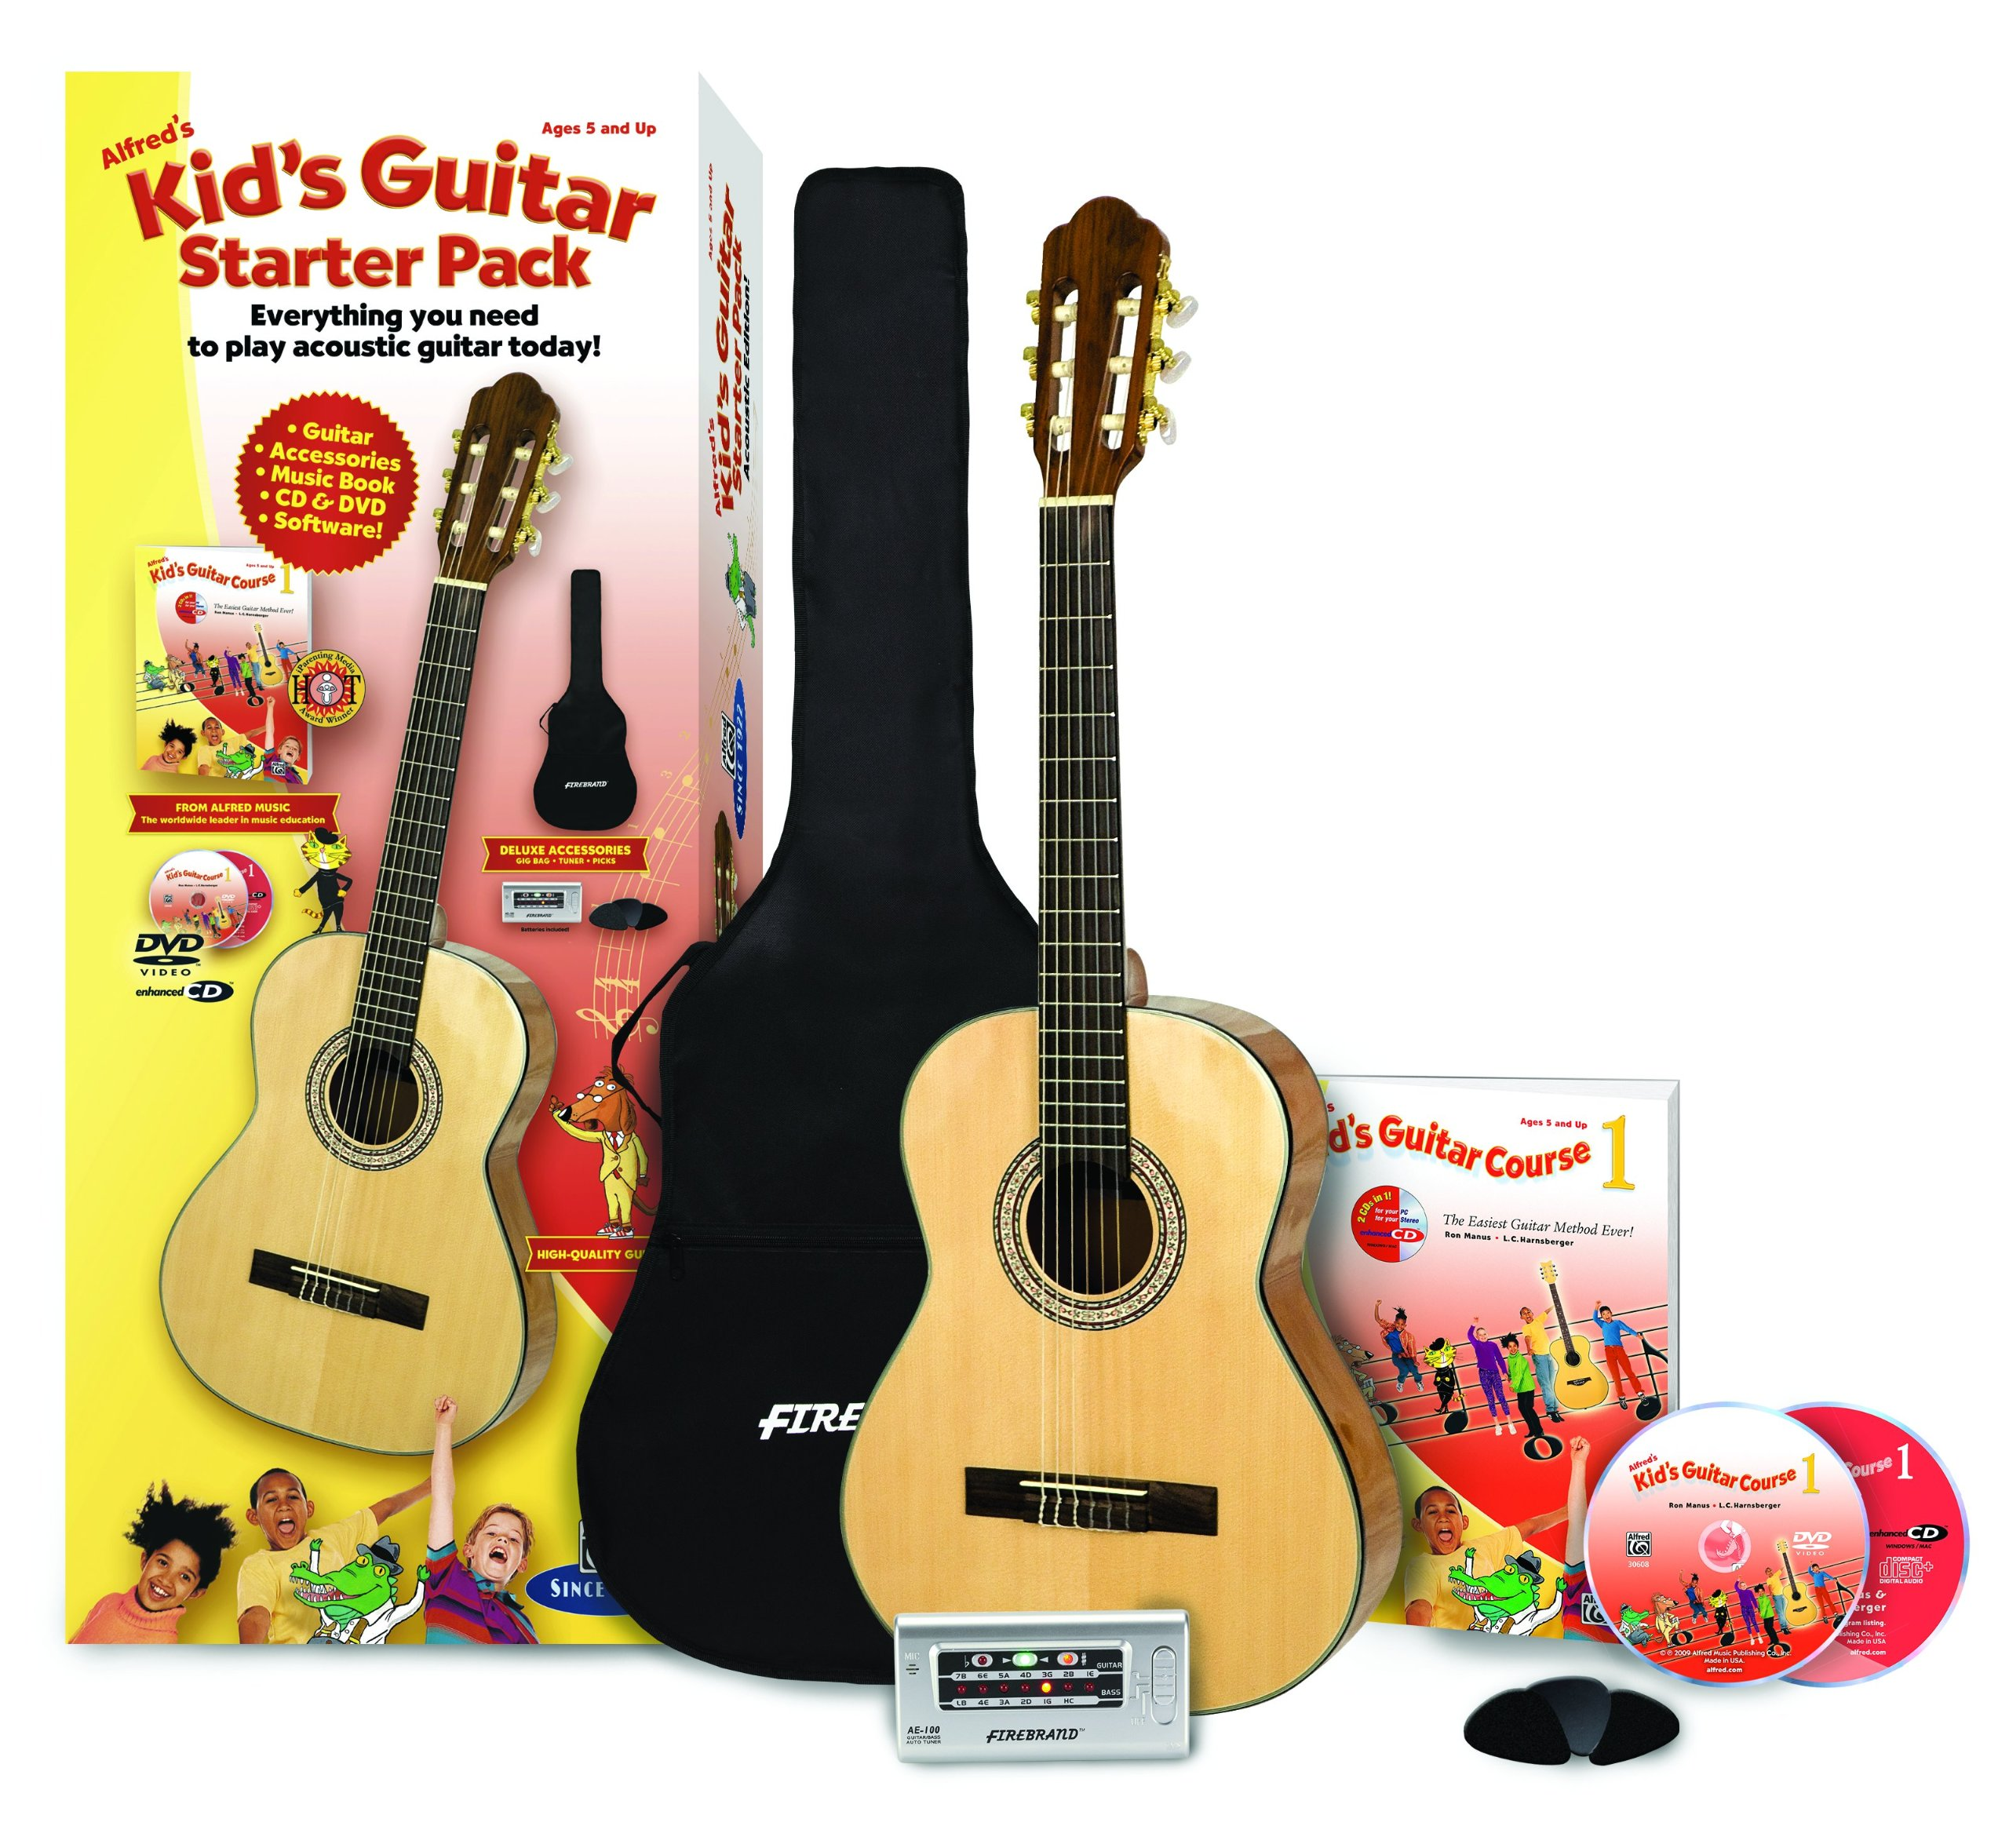 Alfred's Kid's Guitar Course, Complete Starter Pack: Everything You Need to Play Today! by Alfred Music Publishing (Image #1)